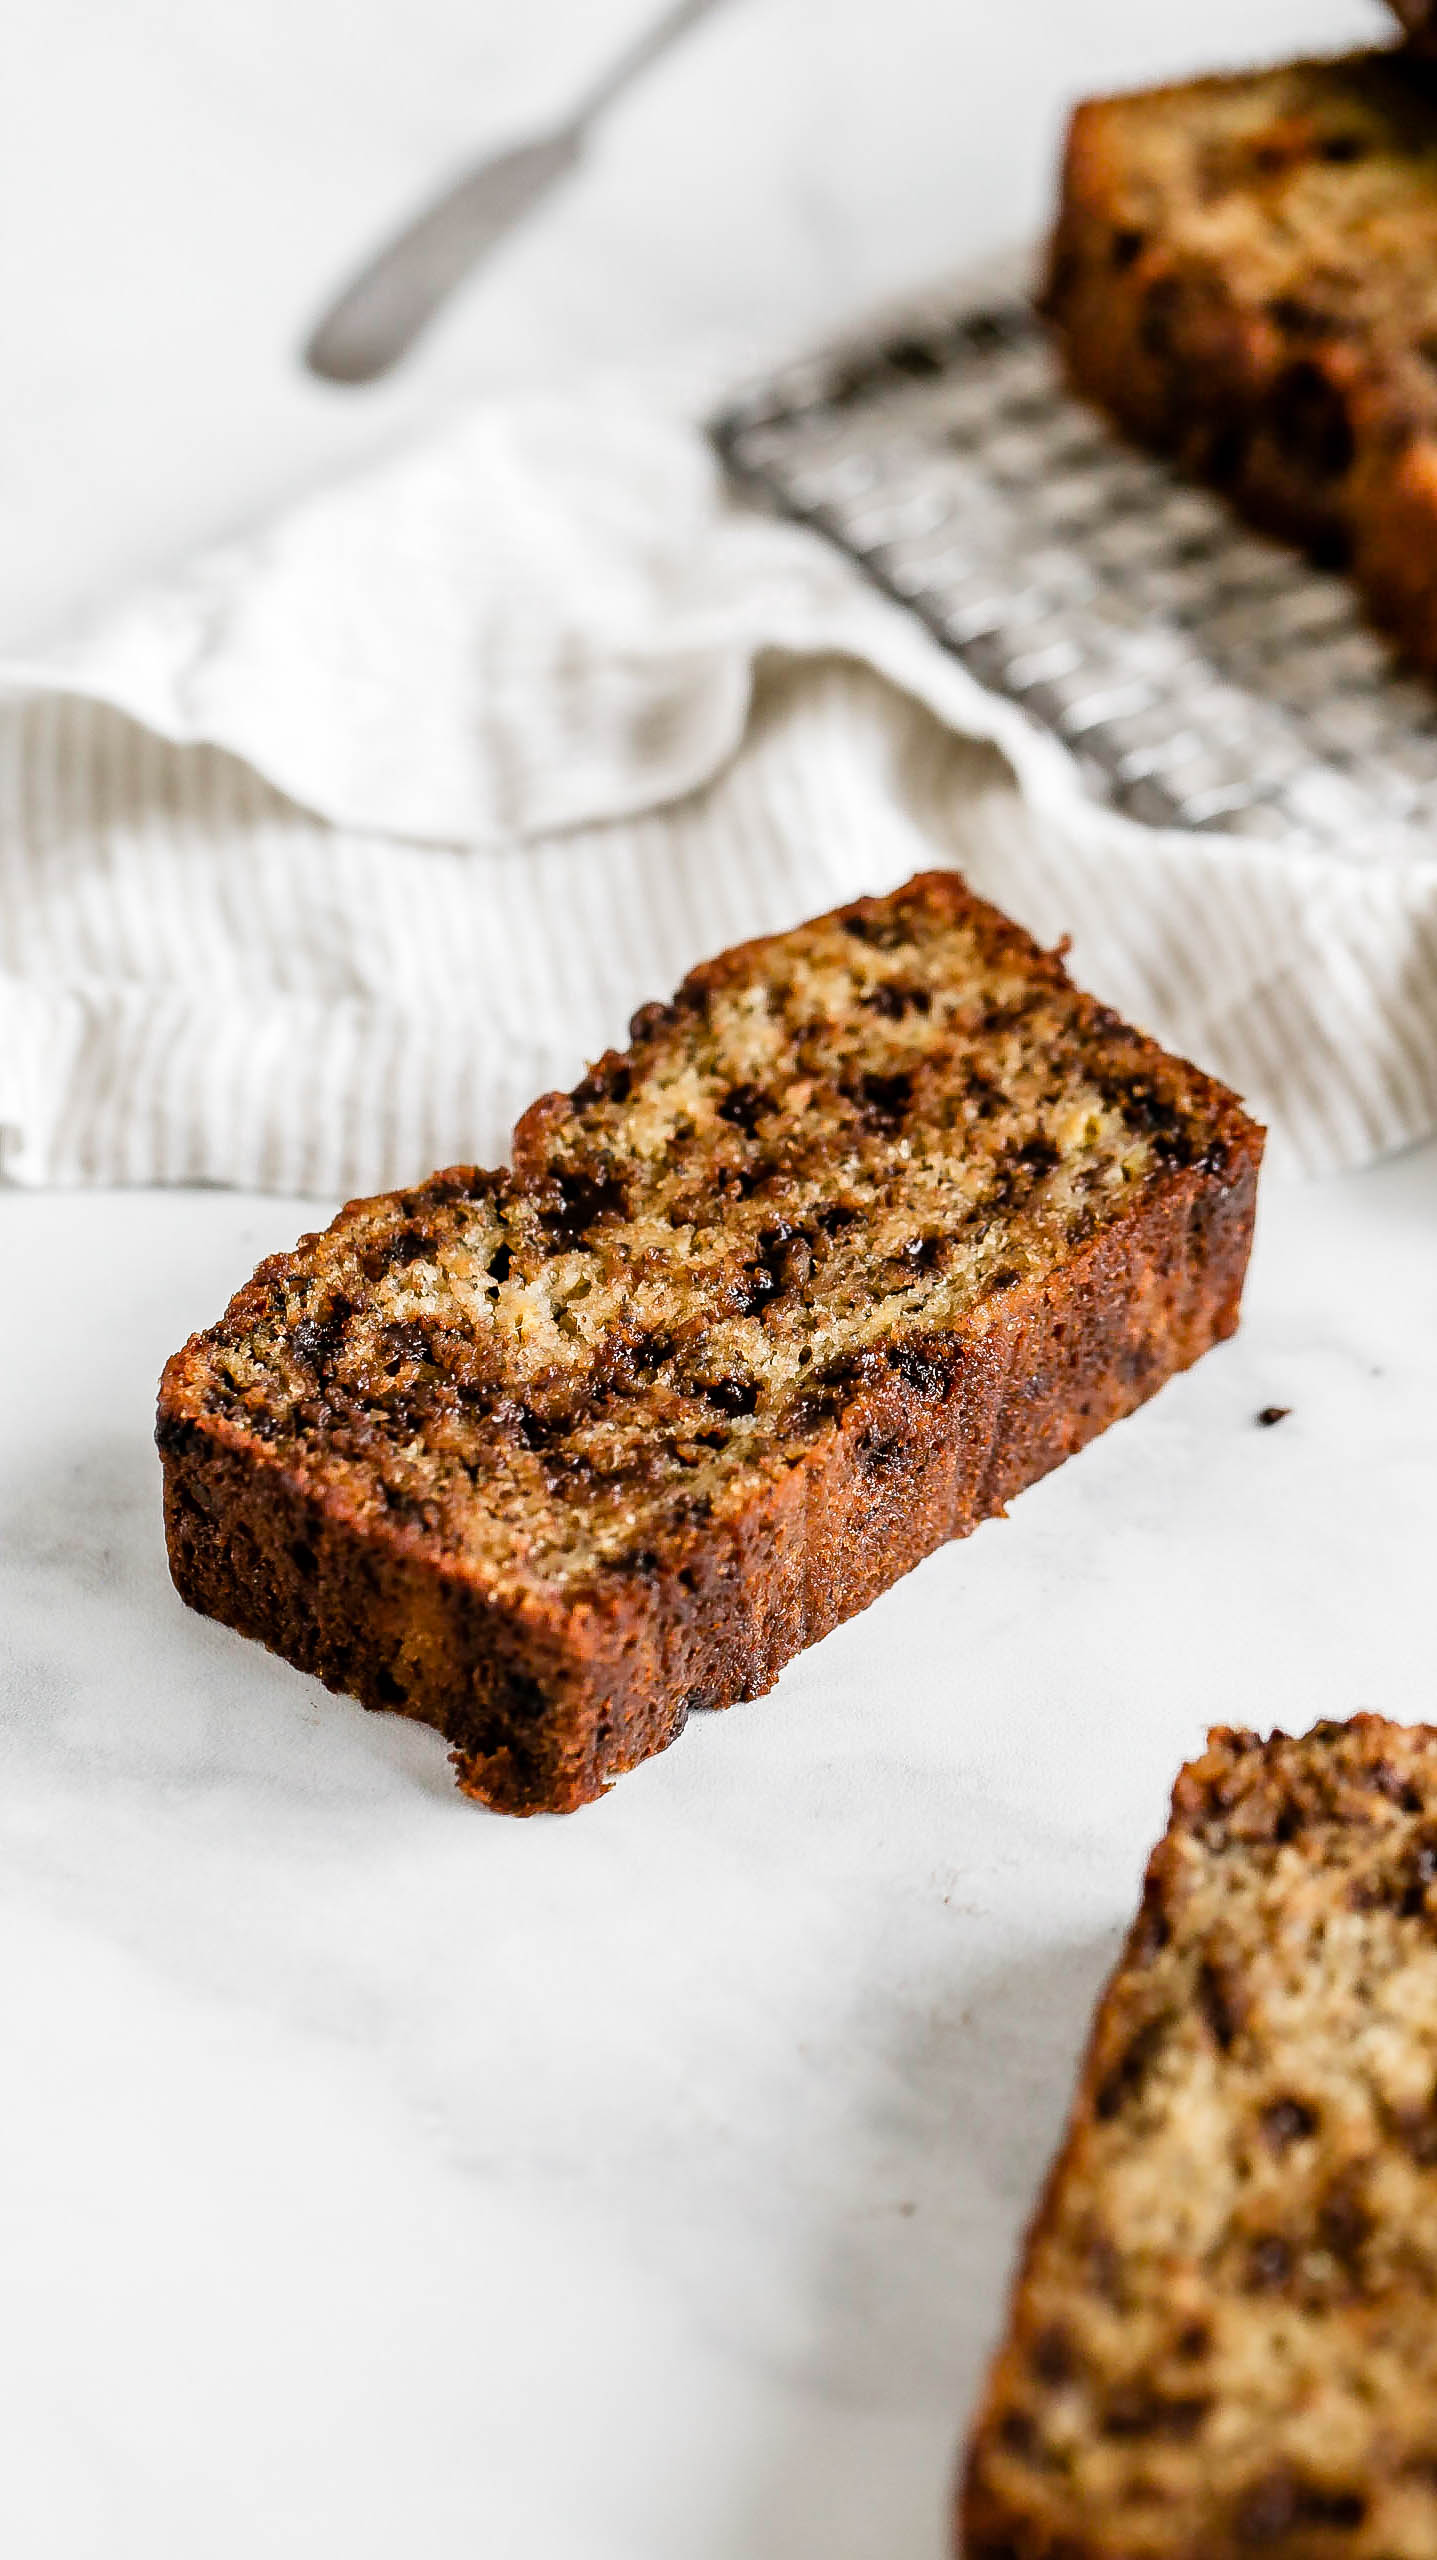 a slice of chocolate chip banana bread